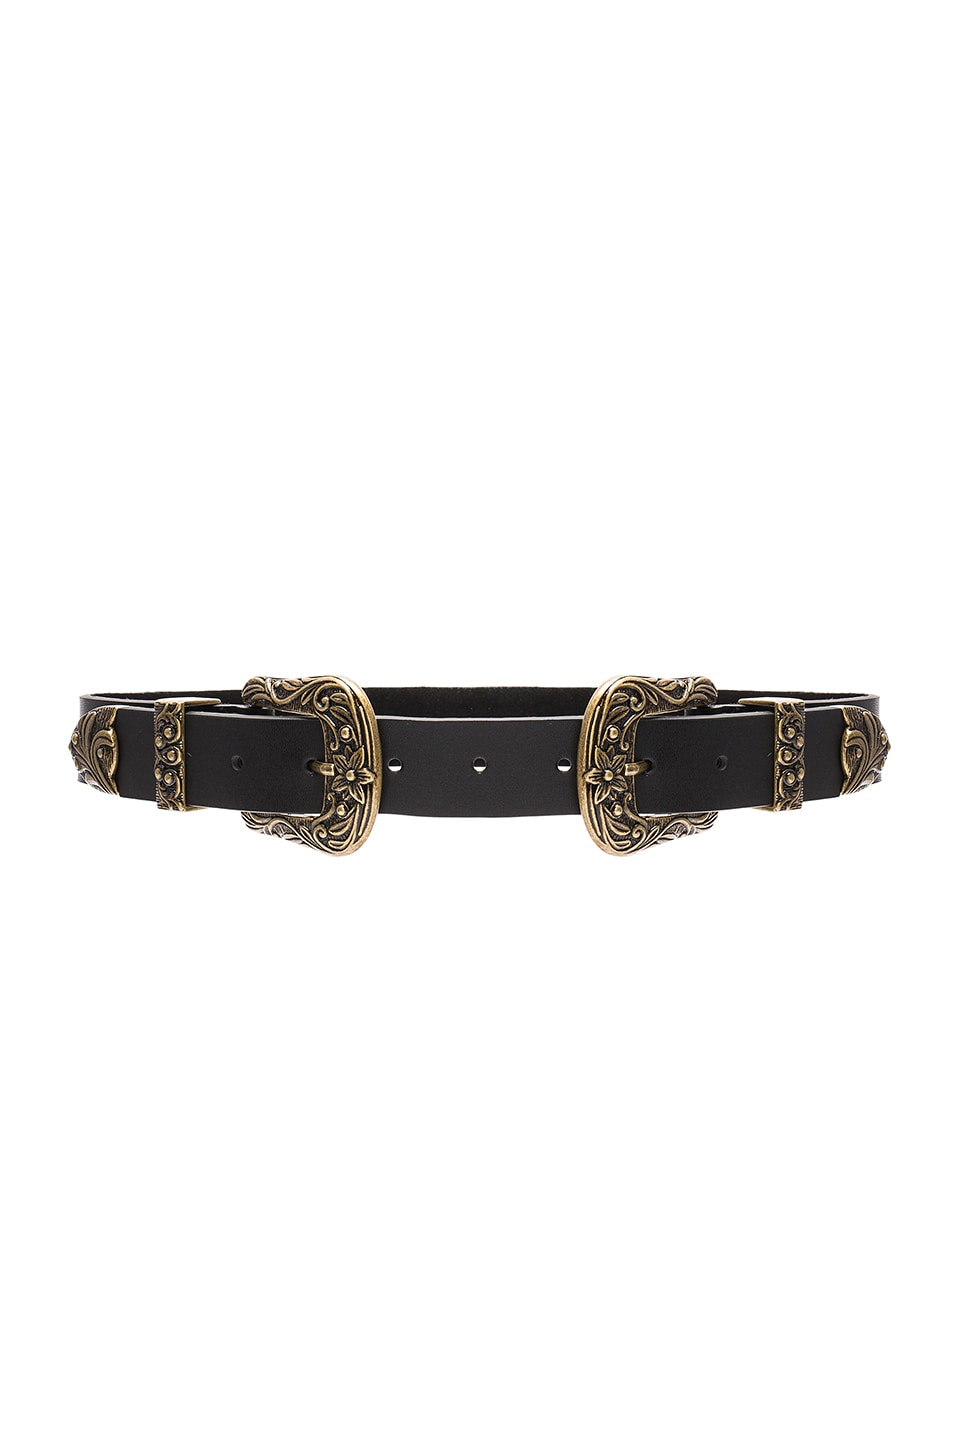 Lovestrength Scarlet Waist Belt in Black Antique & Brass